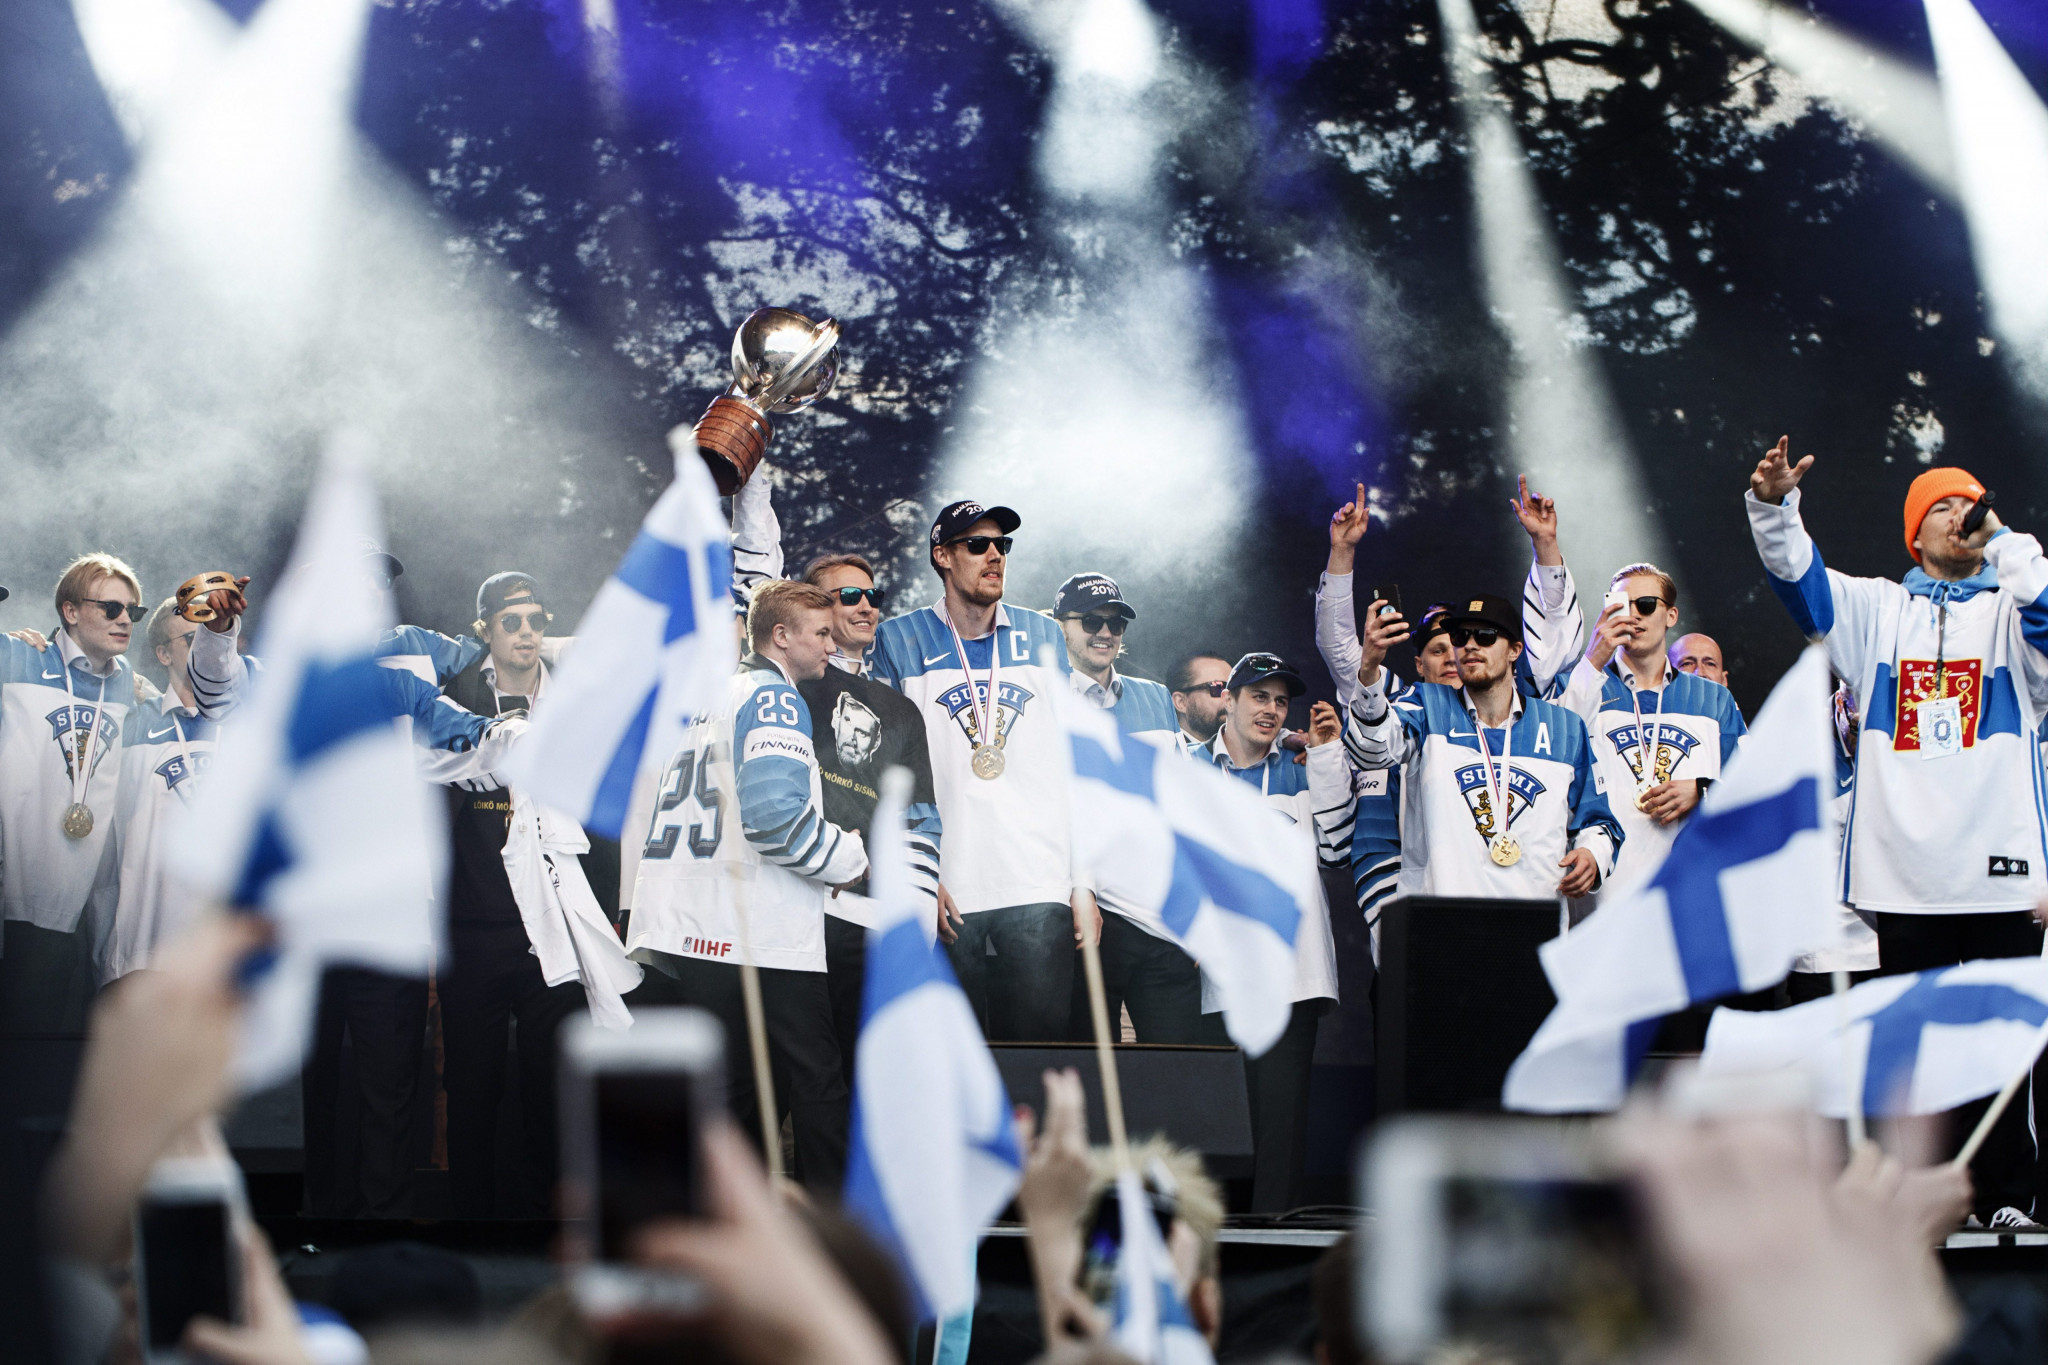 International Ice Hockey Federation Ice Hockey world champions Finland will bid to retain their title in Zurich, Switzerland in 2020 ©USAHockeyArena